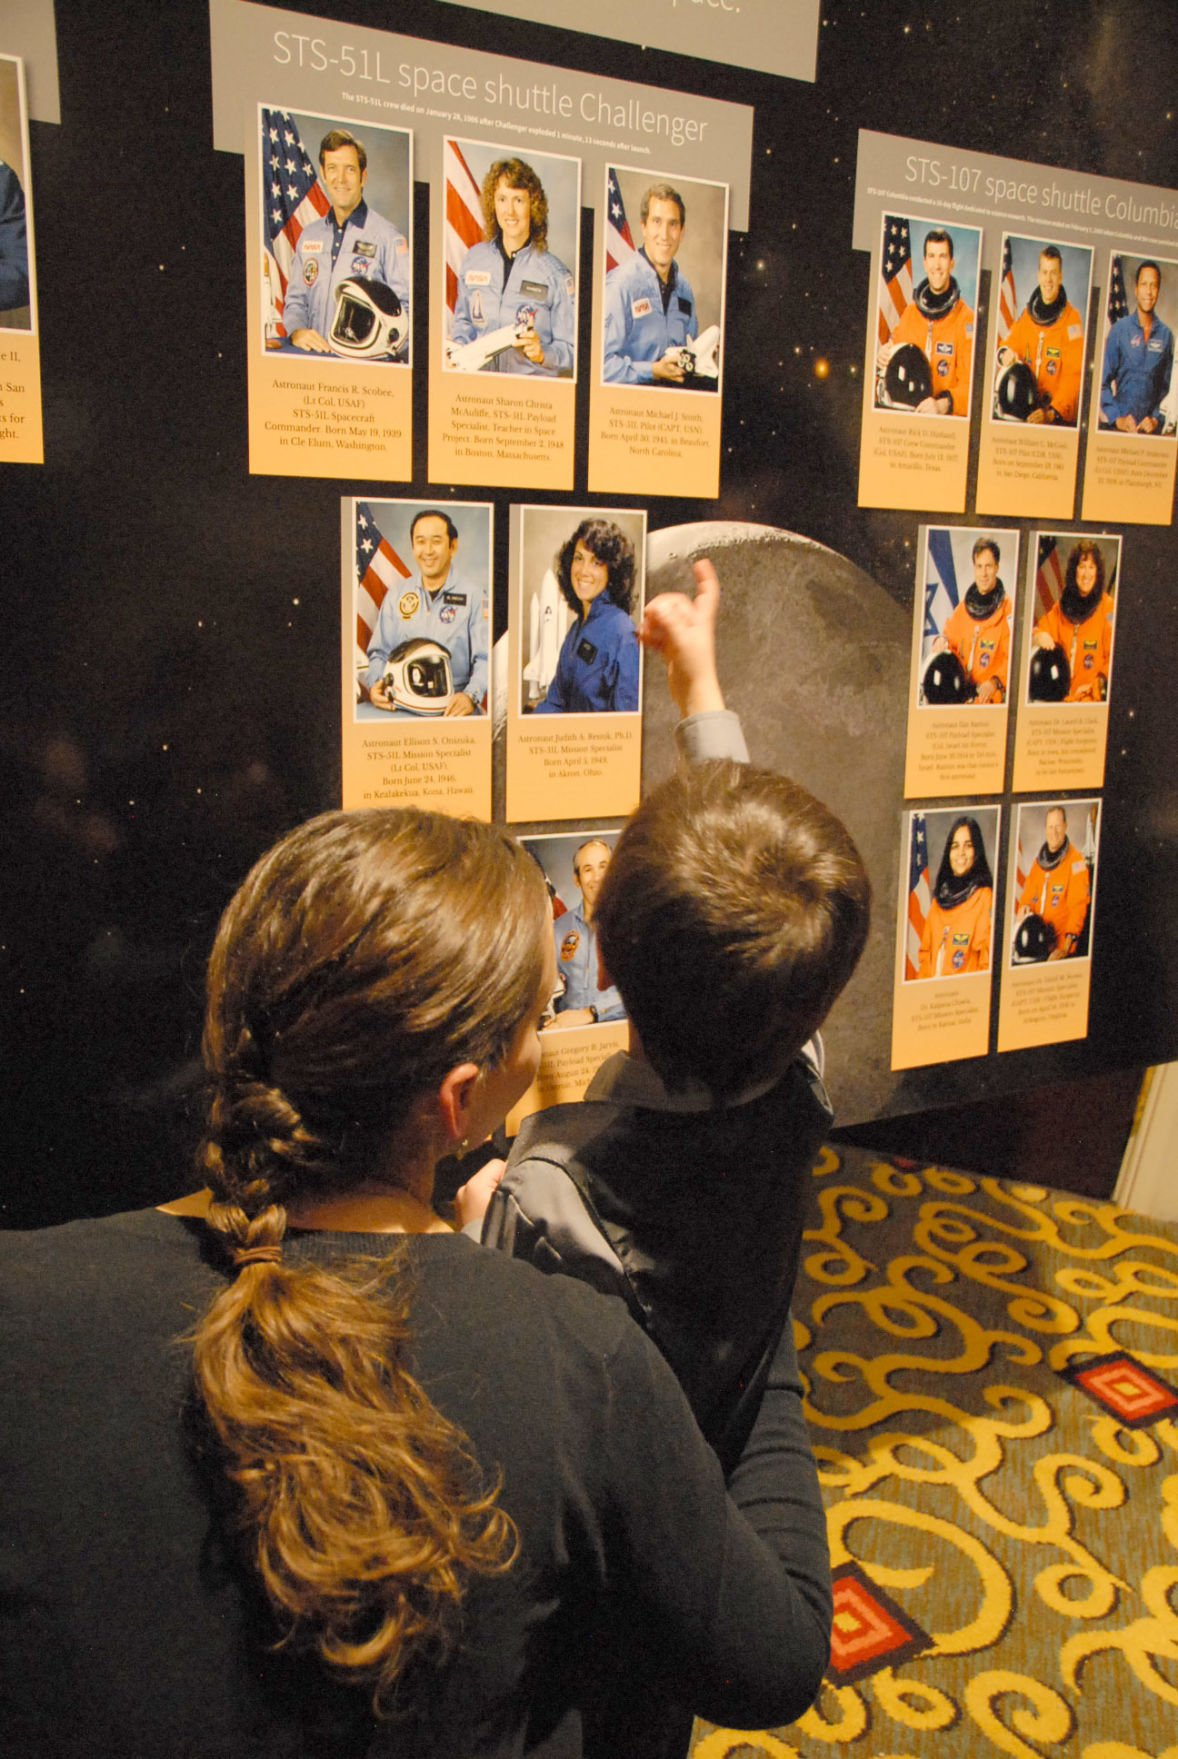 John Applegate, with his mother, Katherine, looks at a display honoring the 14 Space Shuttle and 3 Apollo astronauts who died in space flight. The display was part of the 30th anniversary of the Challenger Shuttle explosion. 012816 Photo by Jeff McCutcheon courtesy of Challenger Learning Center